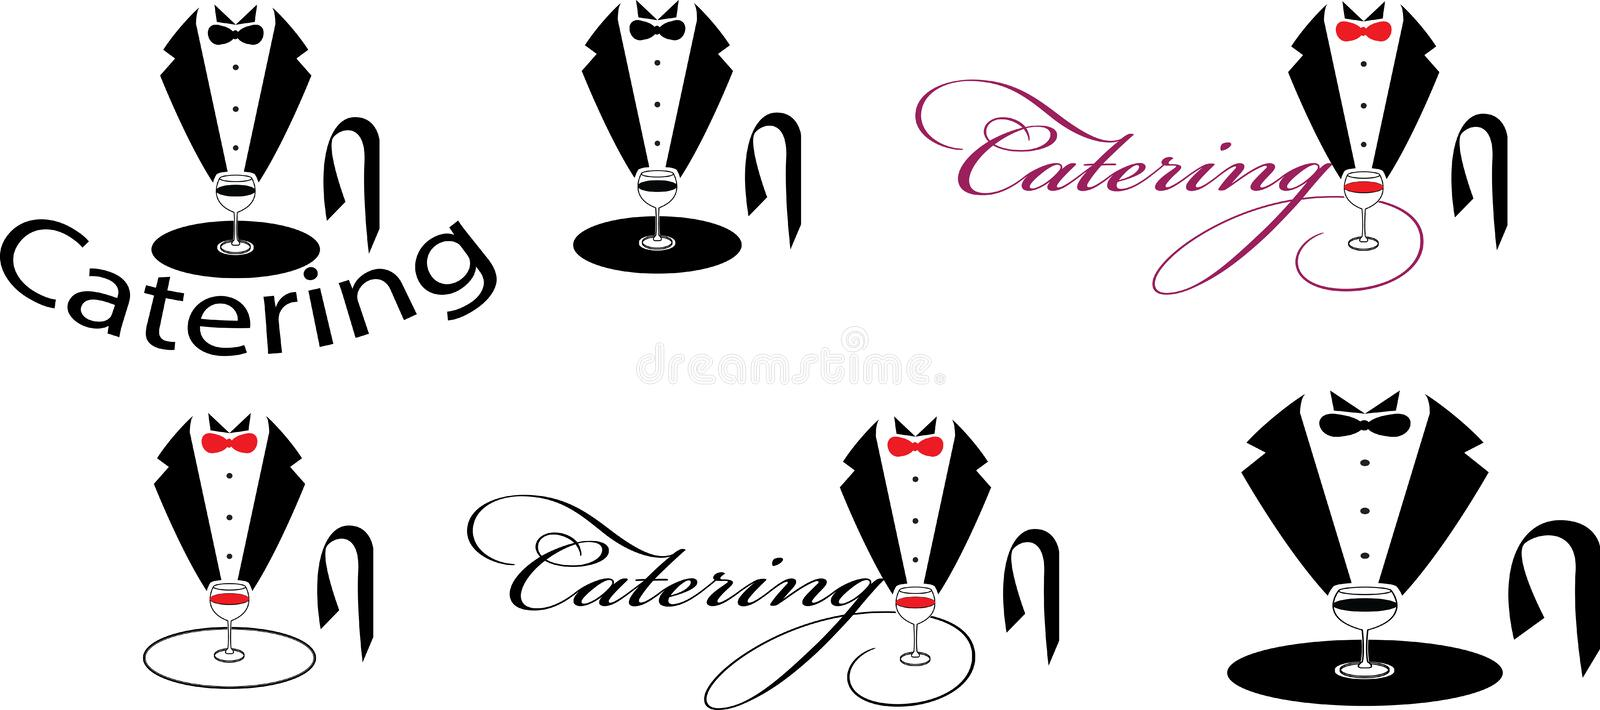 Catering royalty free illustration